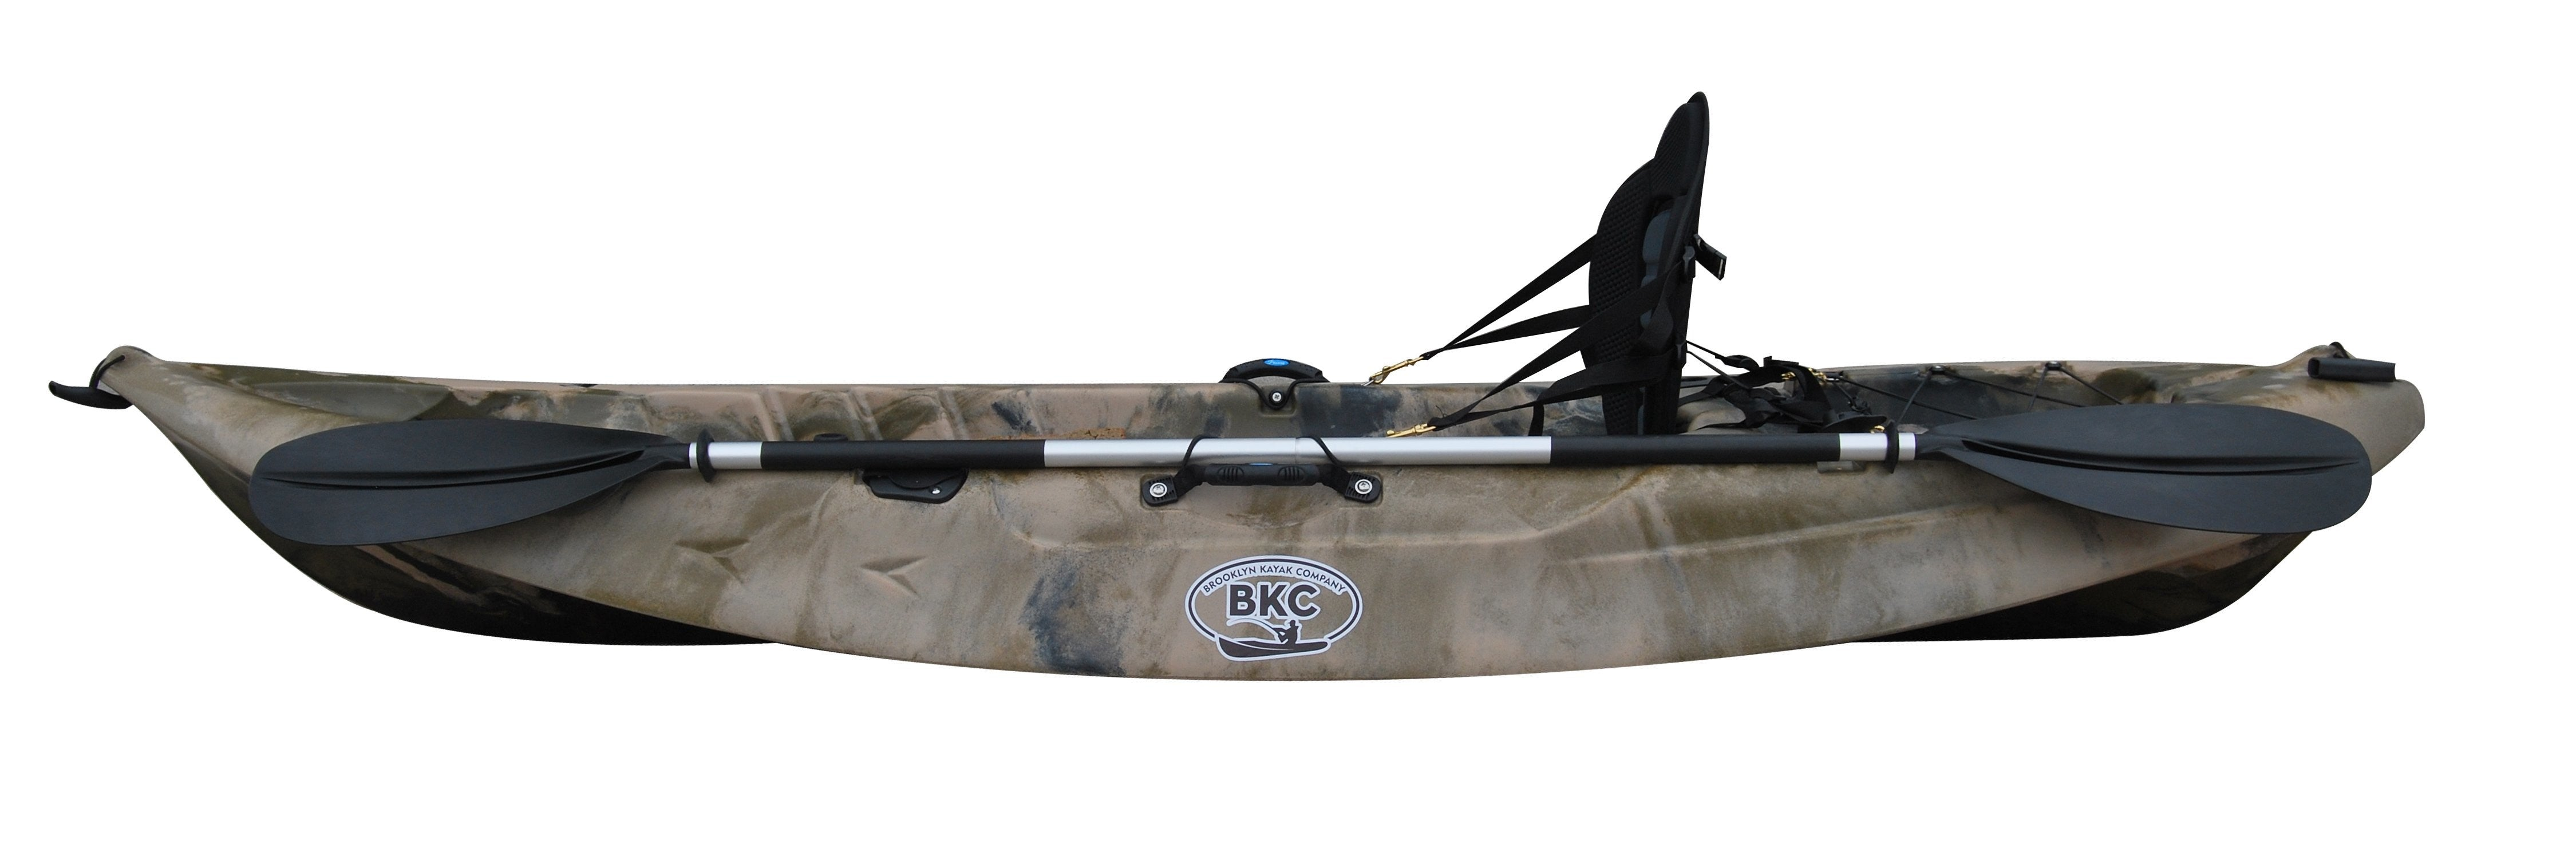 BKC FK184 9' Single Sit On Top Fishing Kayak W/ Seat and Paddle Included Solo Sit-On-Top Angler Kayak - Brooklyn Kayak Company